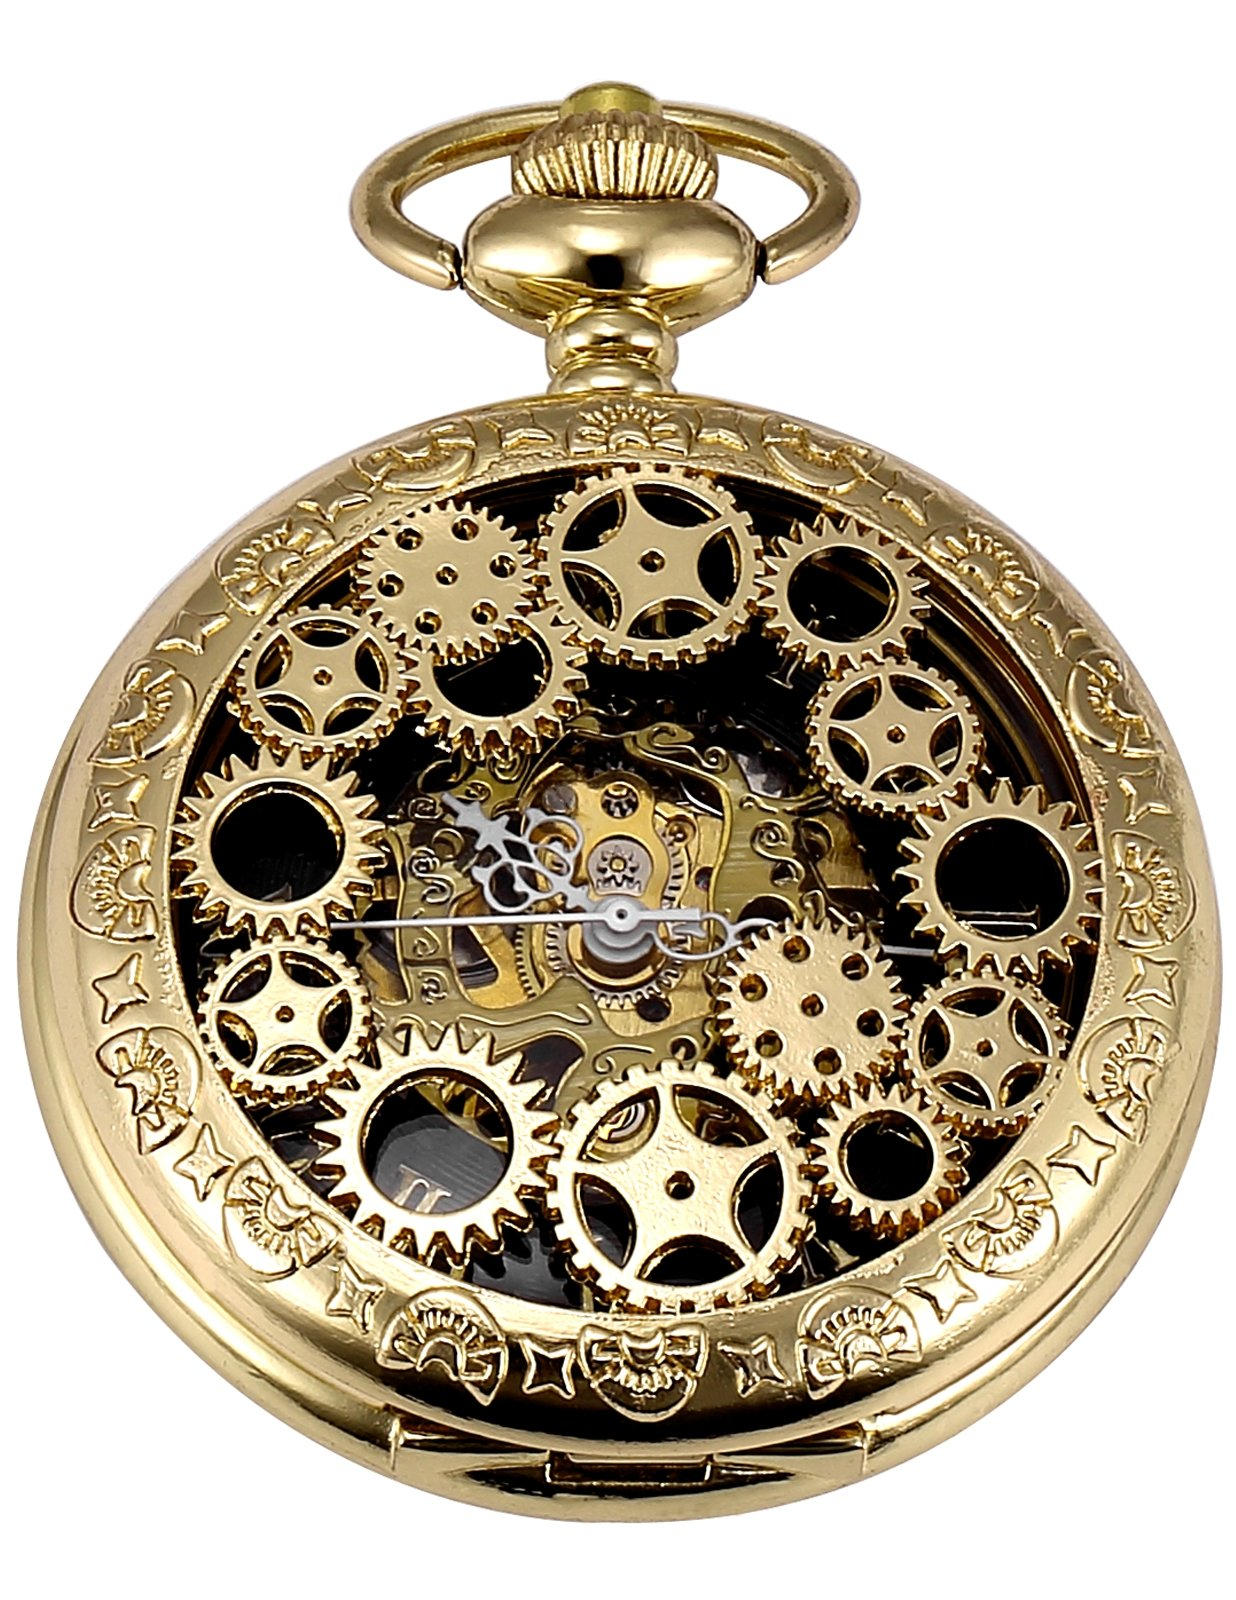 AMPM24 Mechanical Pocket Watch Skeleton Golden Alloy Case WPK220